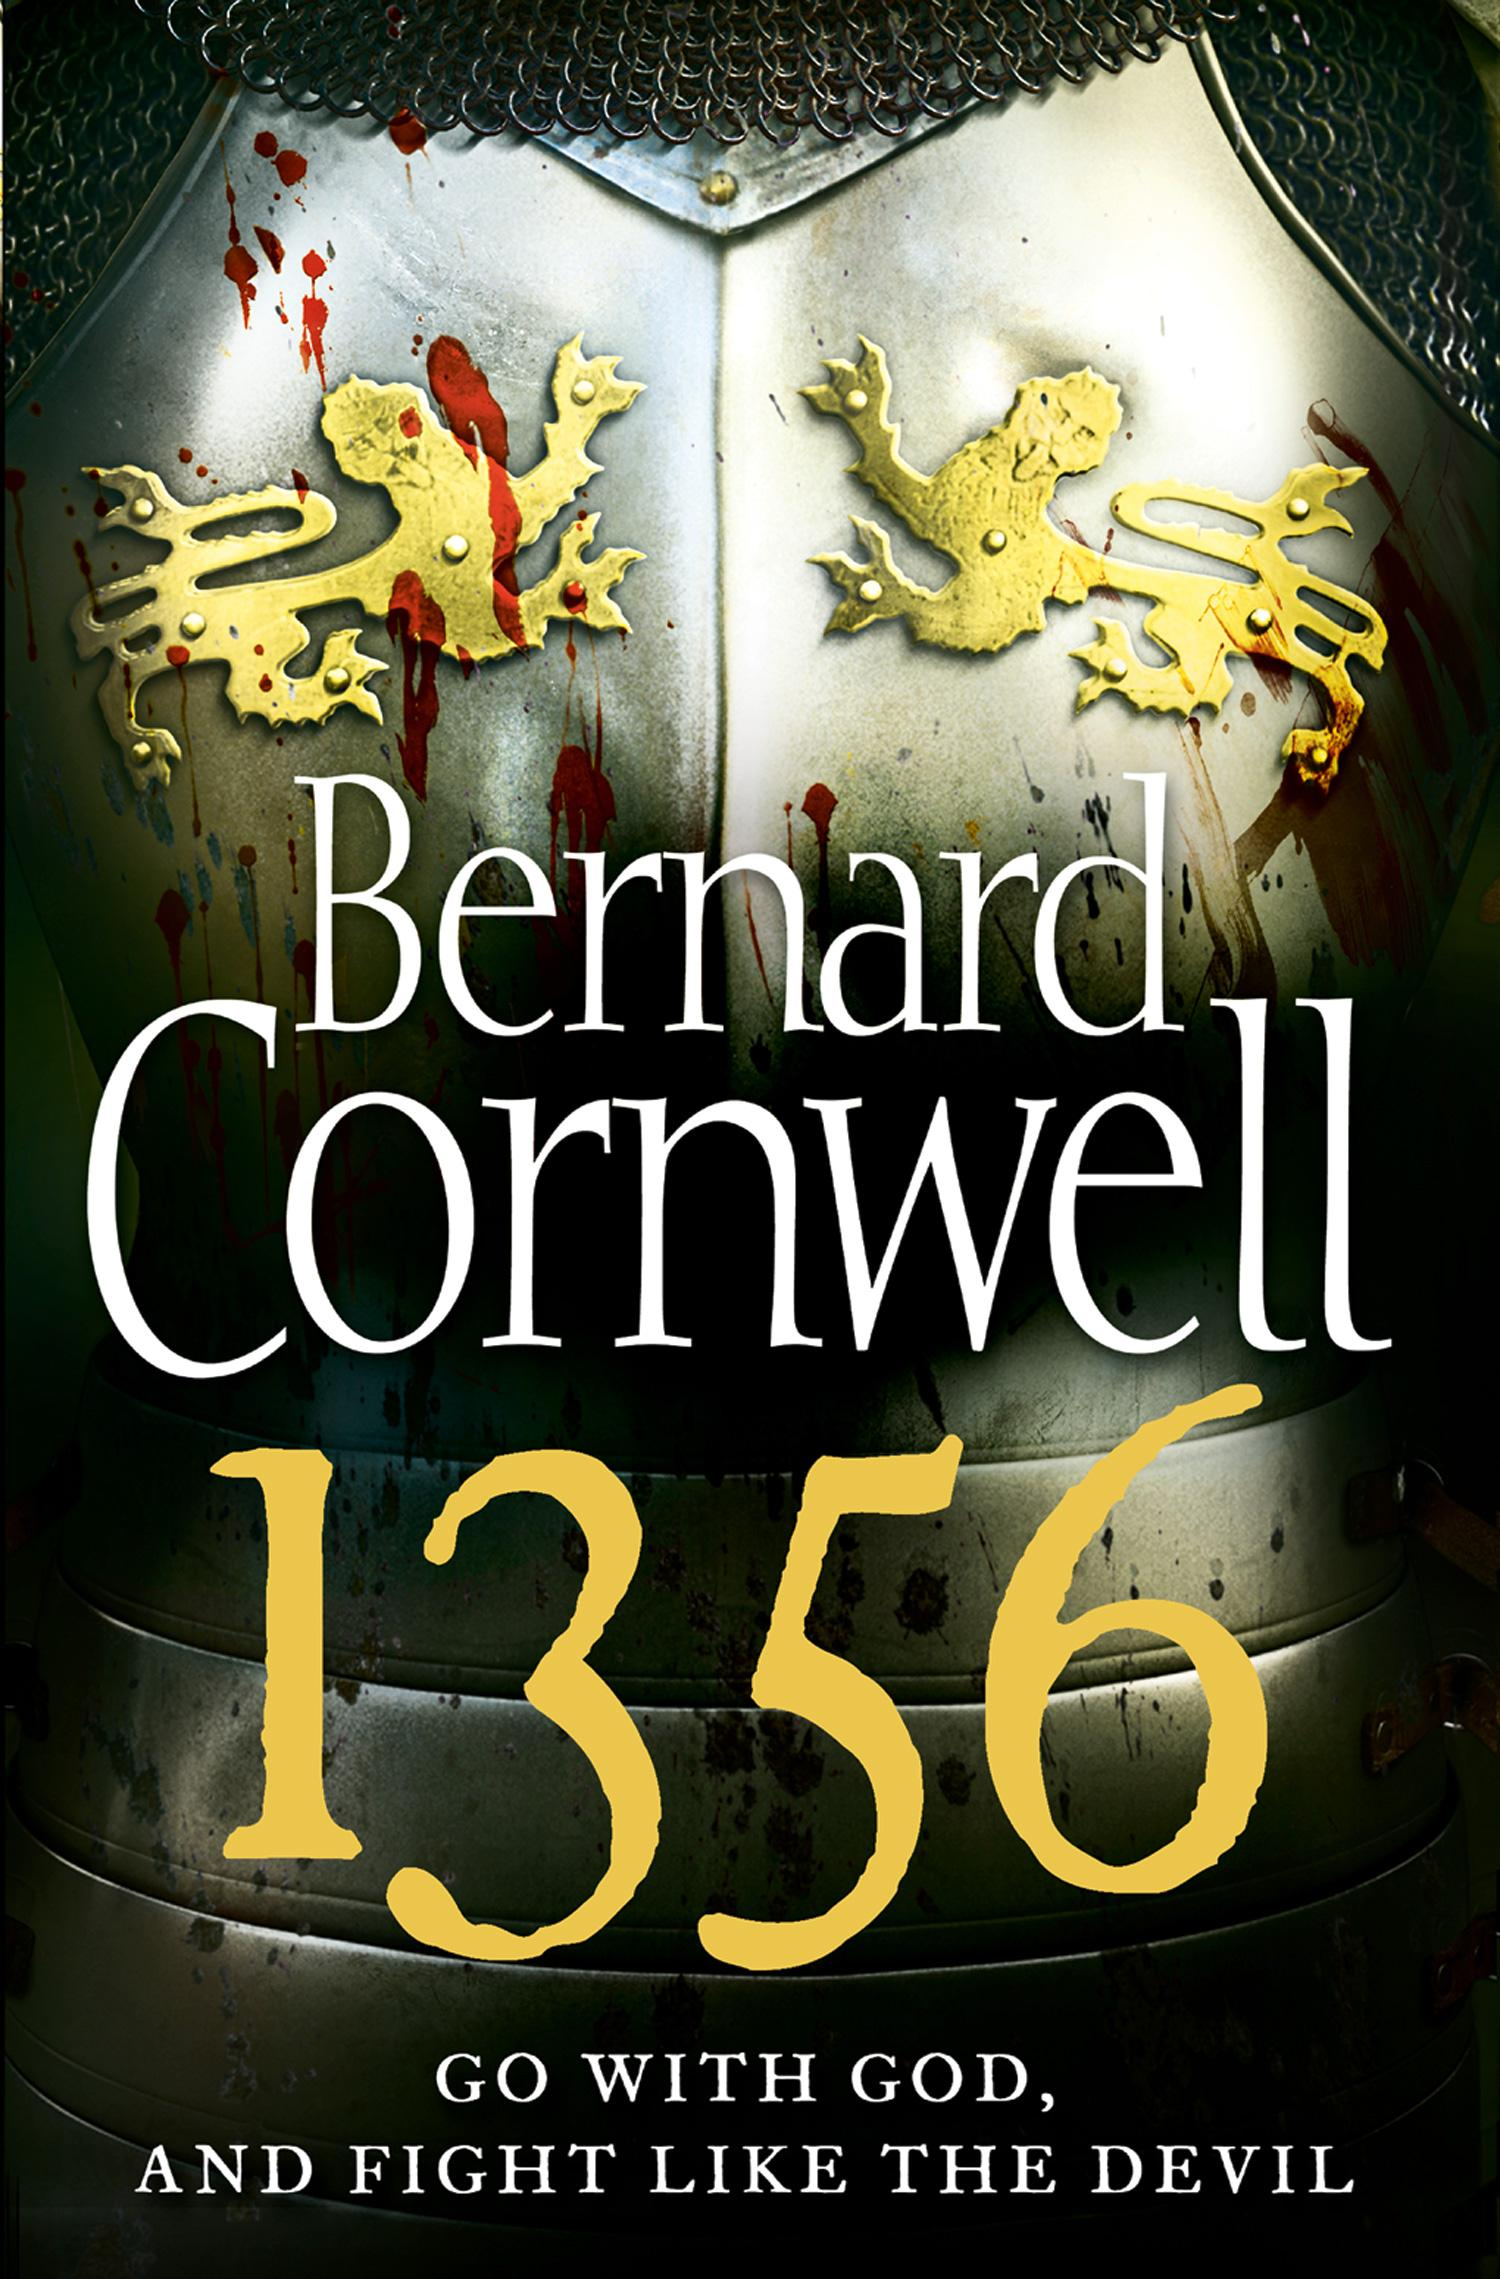 1356 by Bernard Cornwell, ISBN: 9780007510900